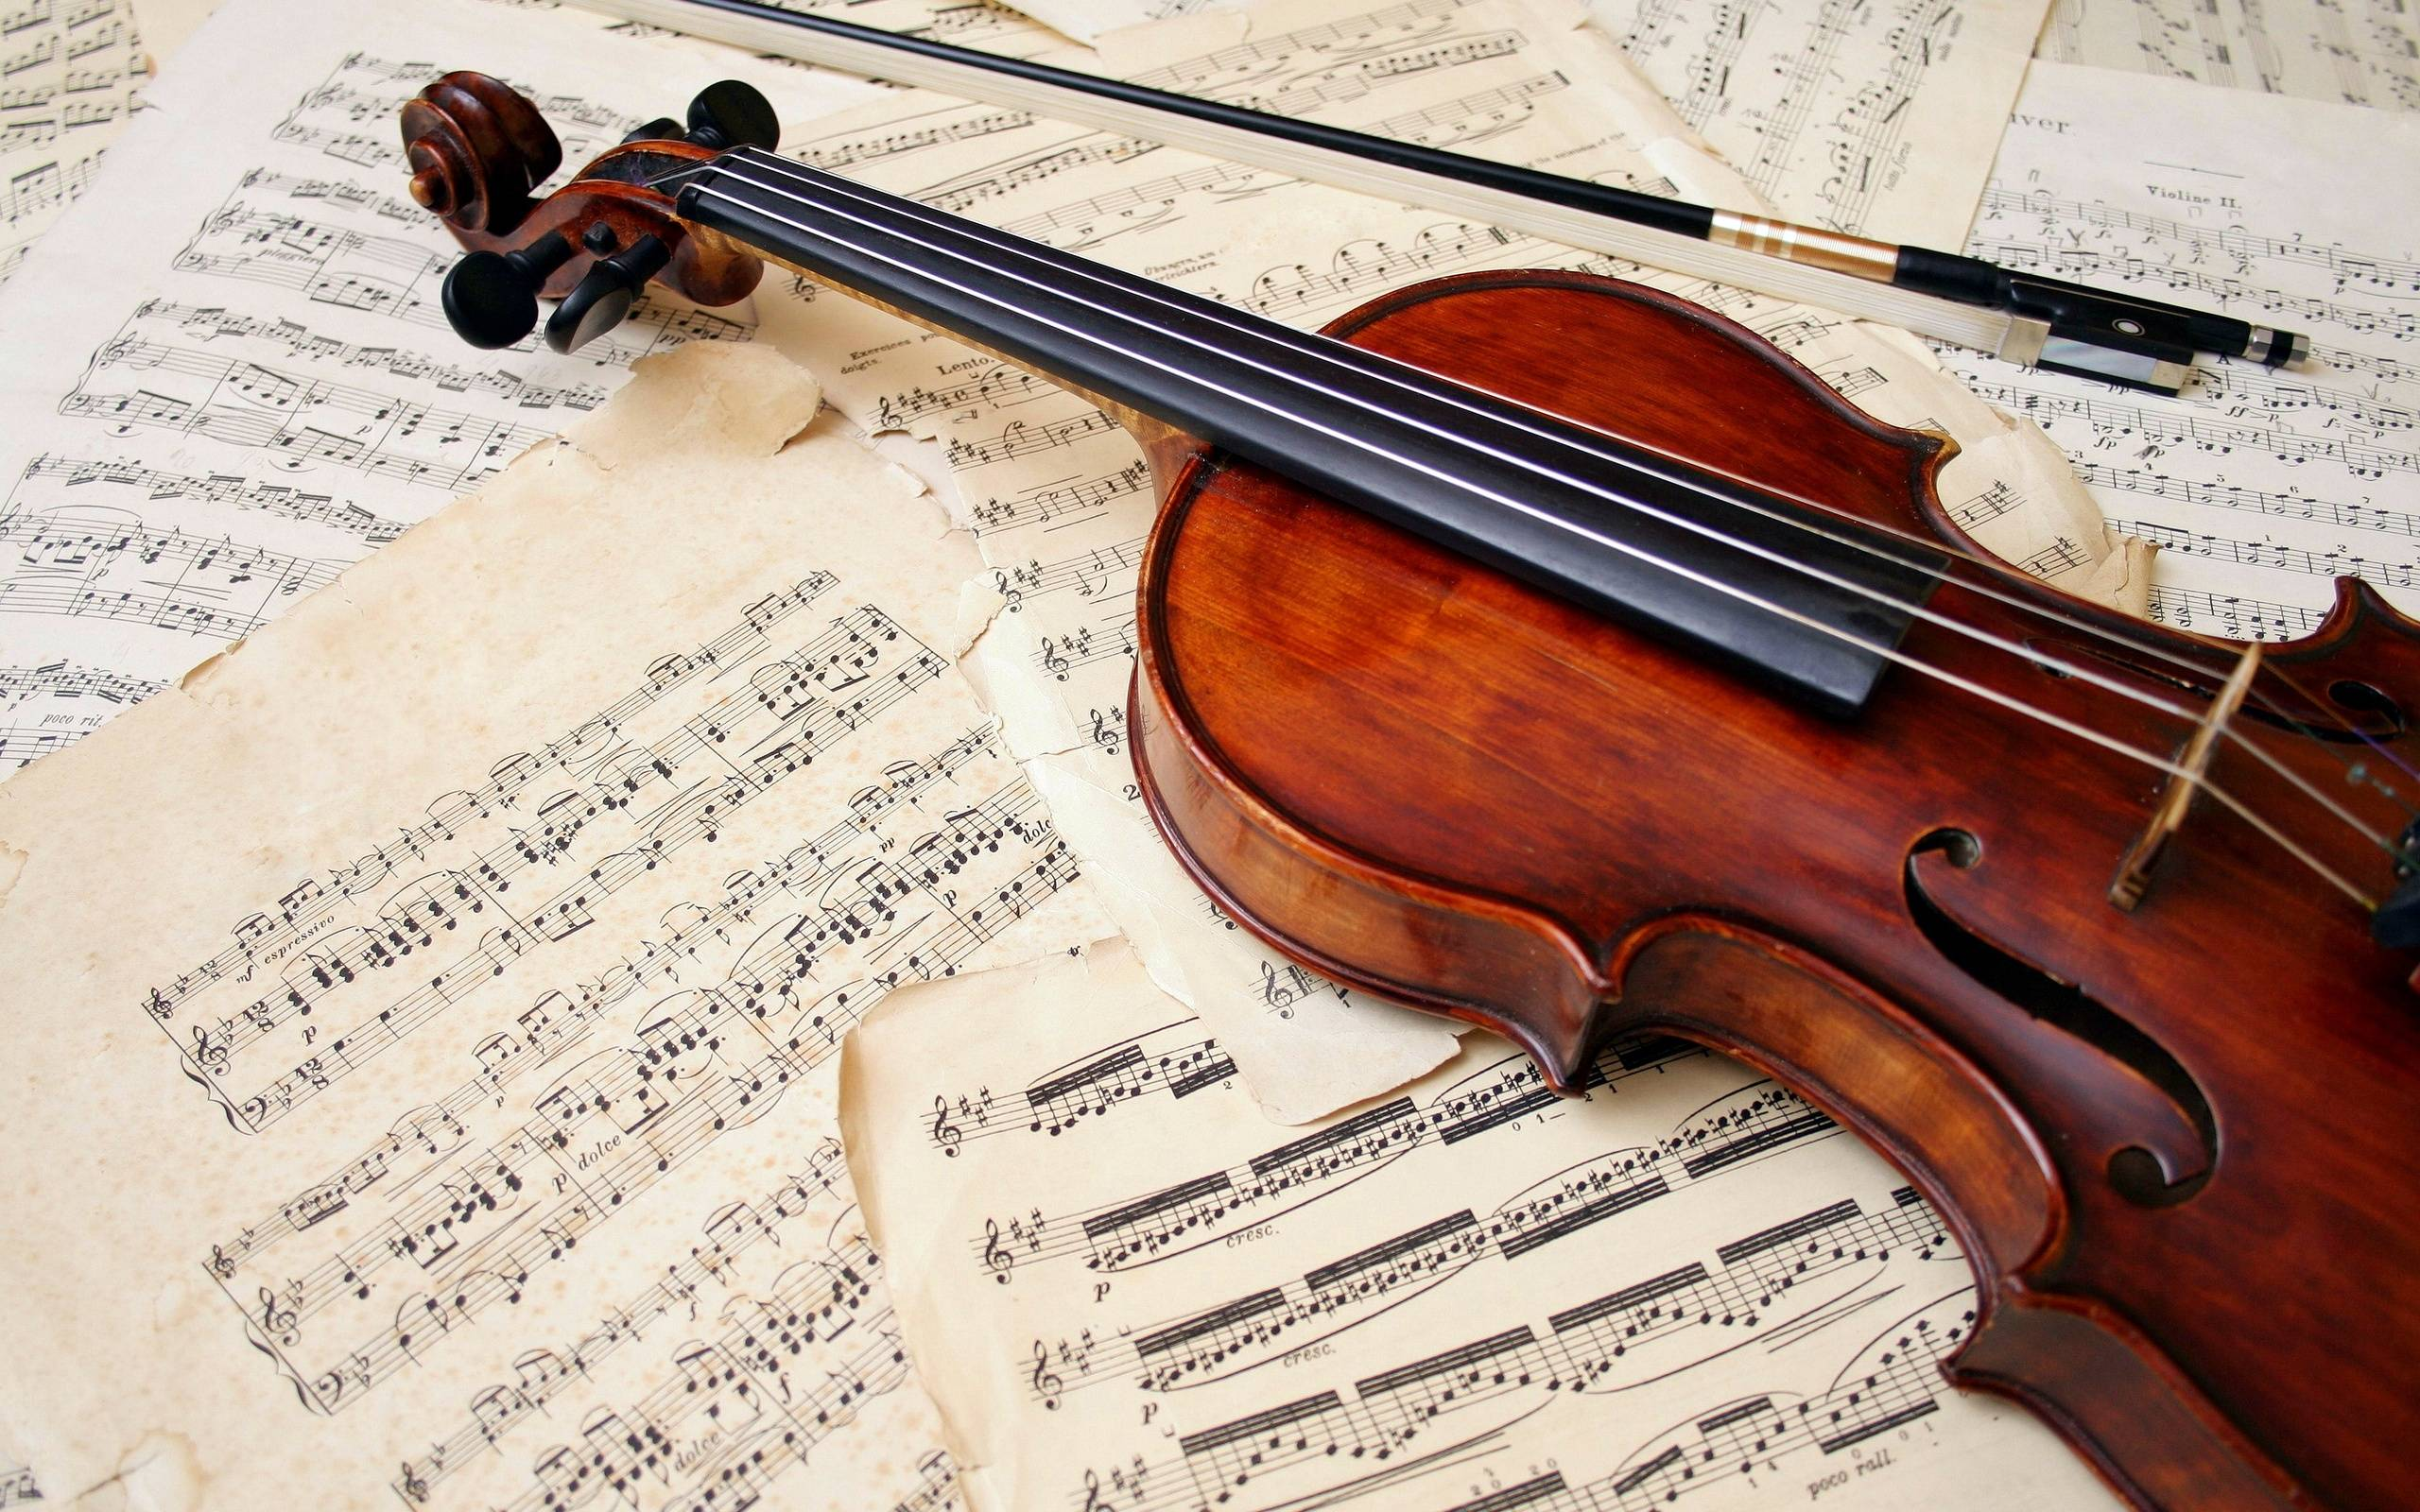 Violin Computer Wallpapers, Desktop Backgrounds 2560x1600 Id: 391320